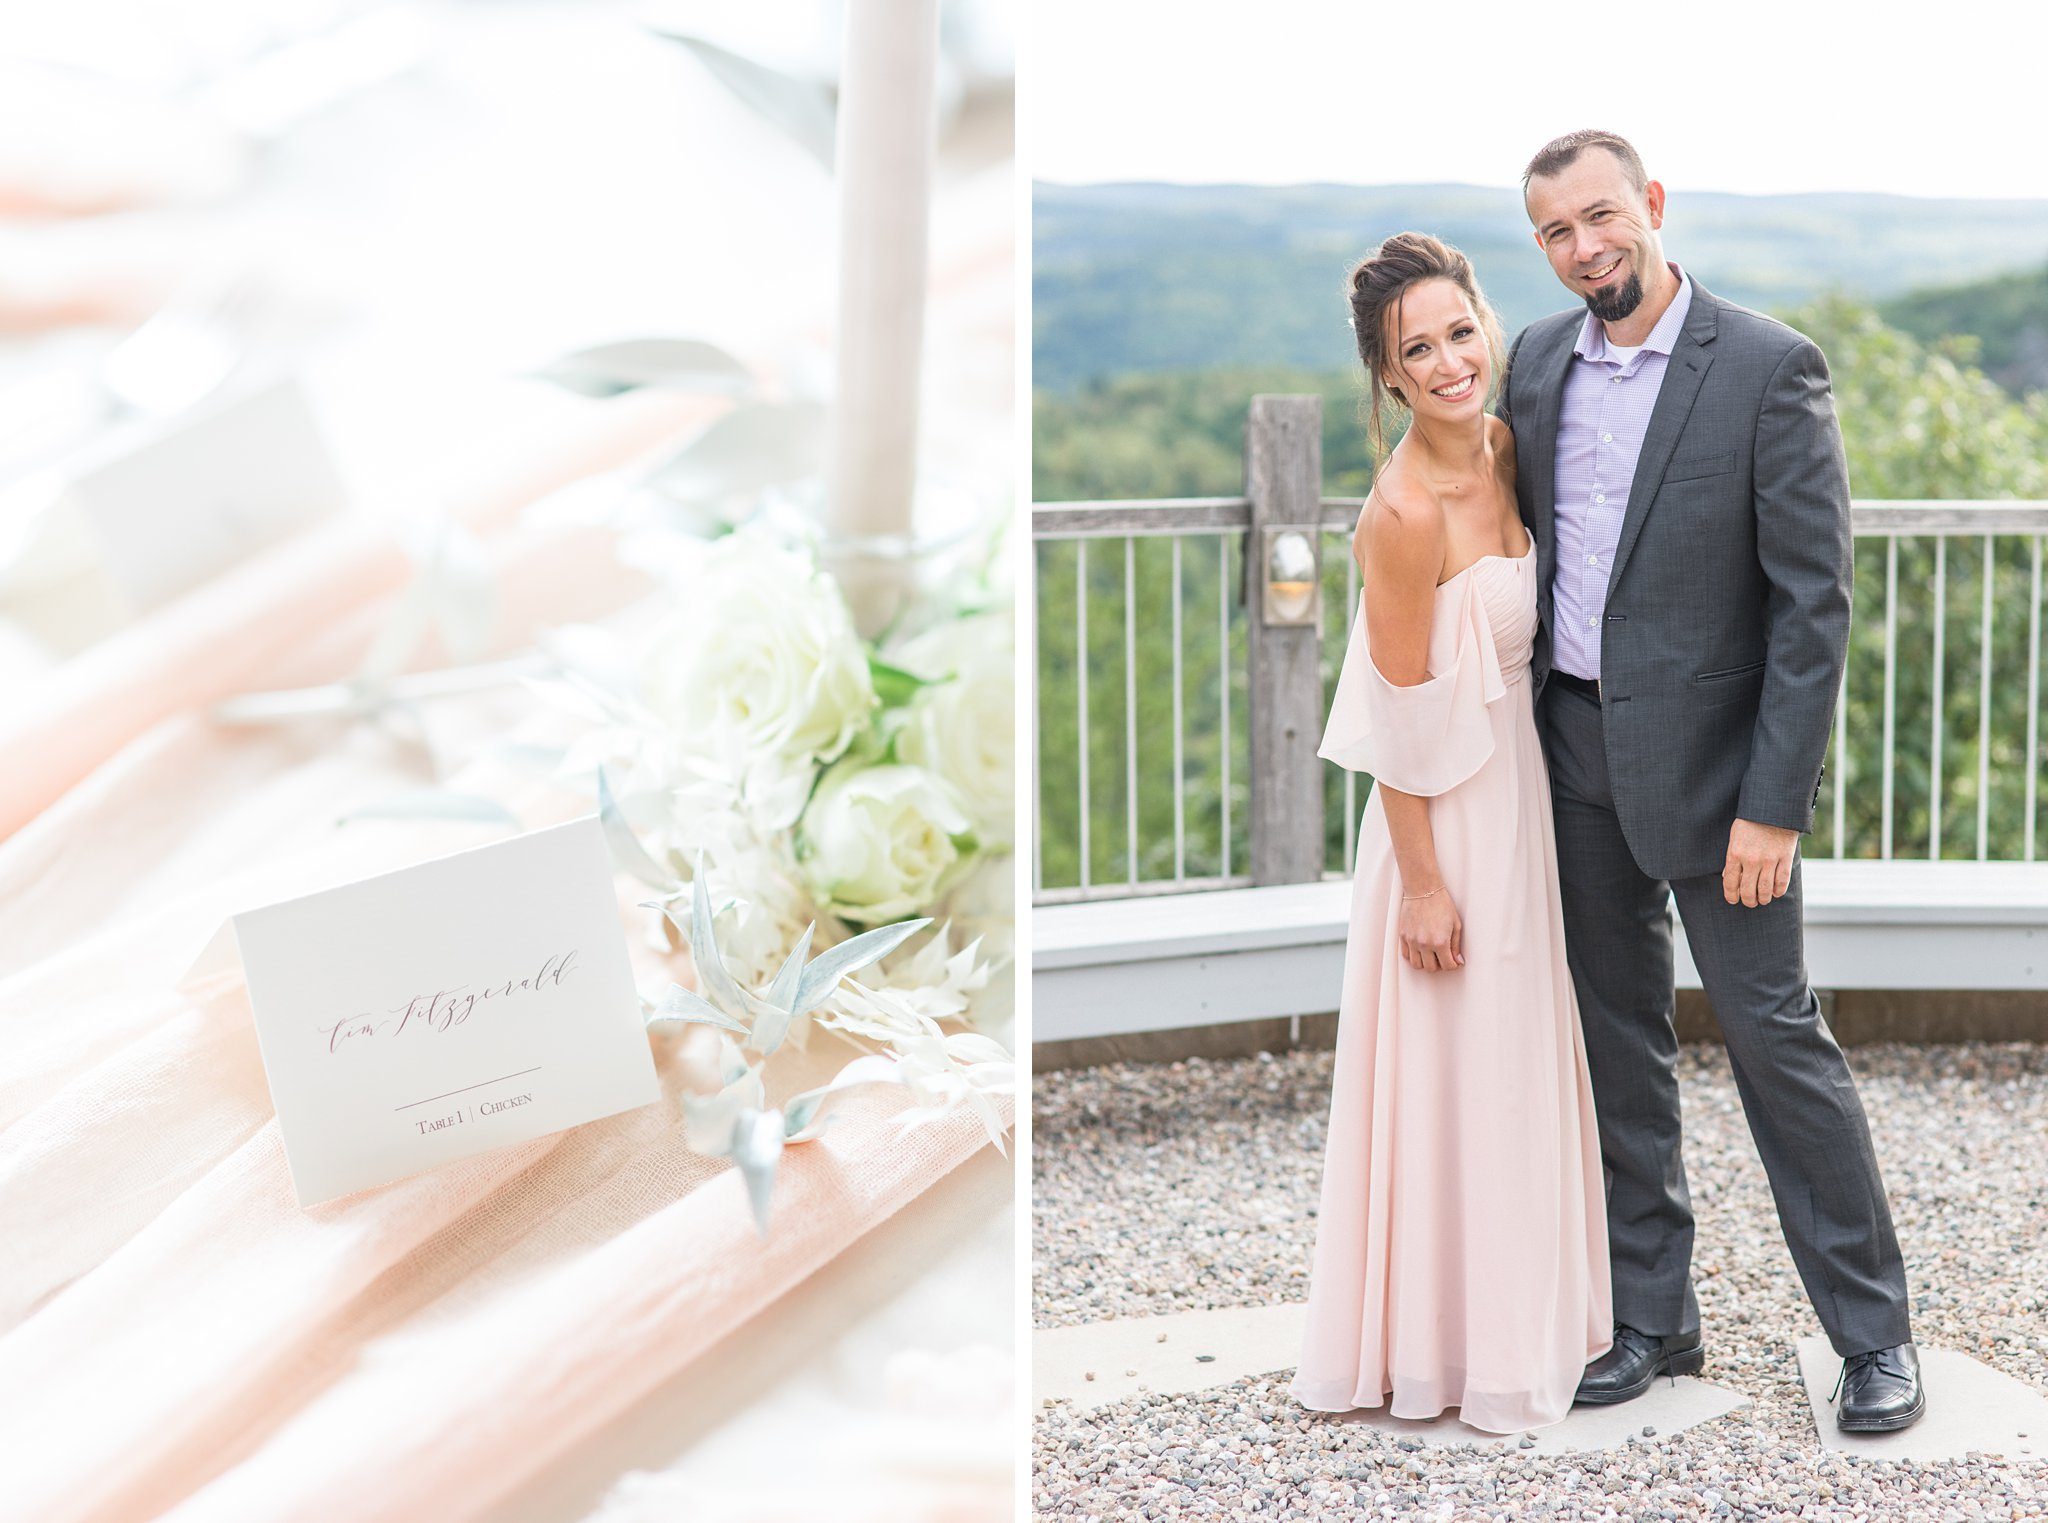 La Fabere seating number, Wakefield wedding photos, Le Belvedere